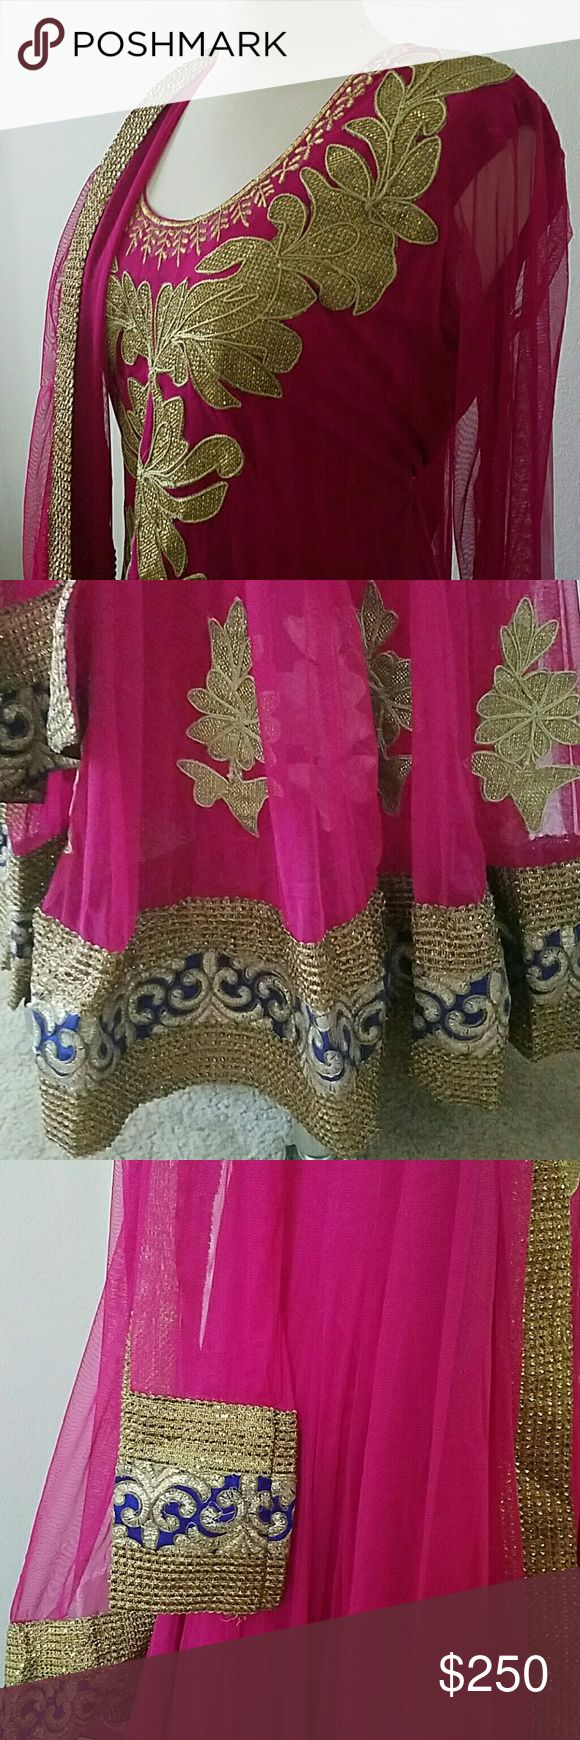 Indian Bollywood Anarkali evening gown Pink anarkali desi outfit with gold and blue lace. Perfect for weddings. Only wore once. Comes with dupatta and leggings :: indian, Pakistani, desi, wedding, bollywood, anarkali, shalwar, Kameez :: Dresses